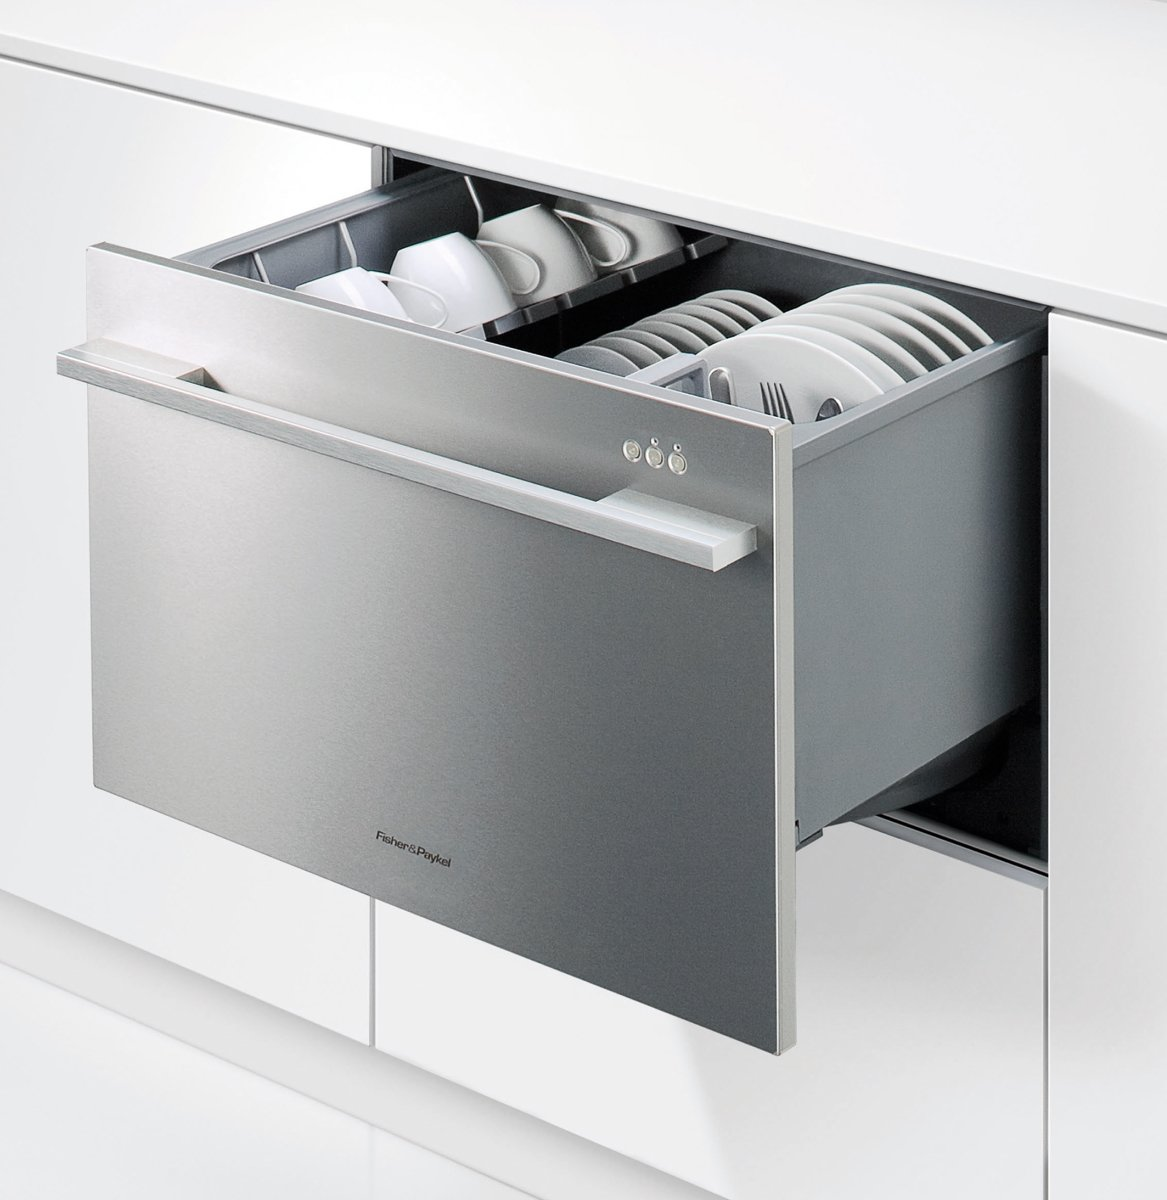 Fisher and paykel 2 drawer dishwasher - Fisher Paykel Dd60sdfx7 Dishdrawer Dishwasher Product Video